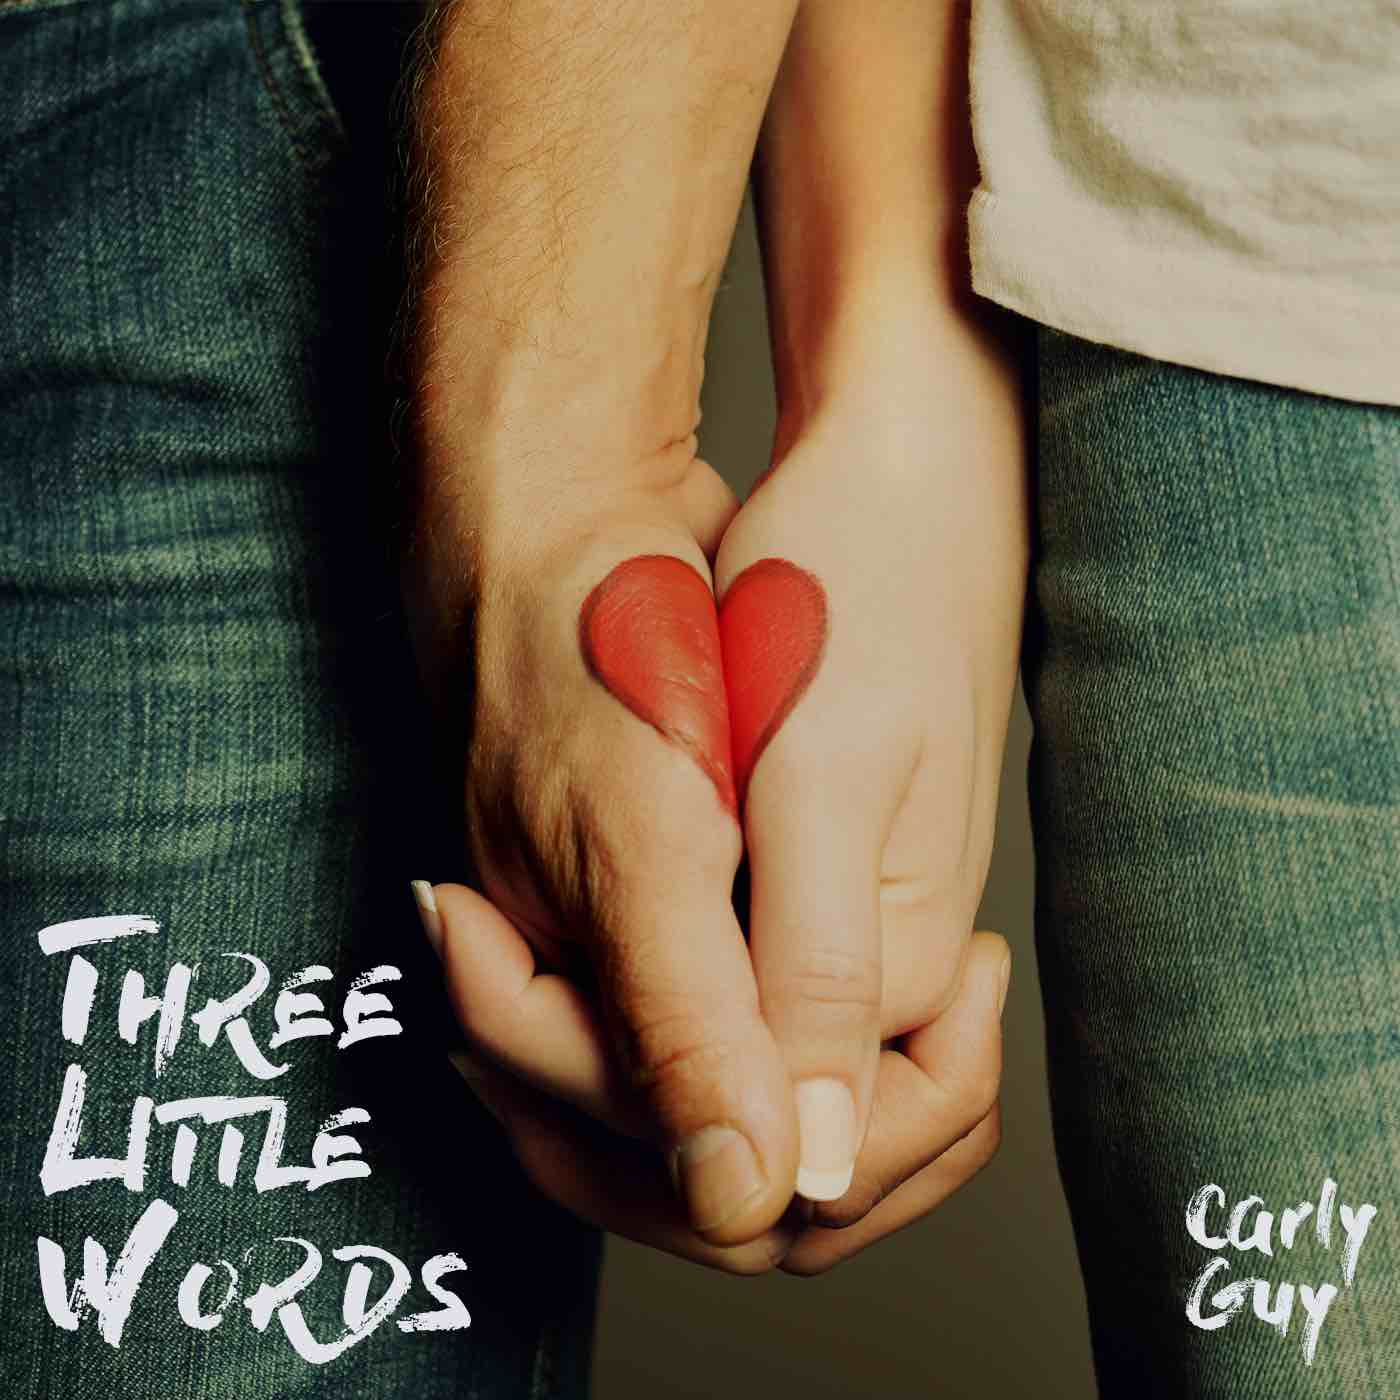 Three-Little-Words-Carly-Guy